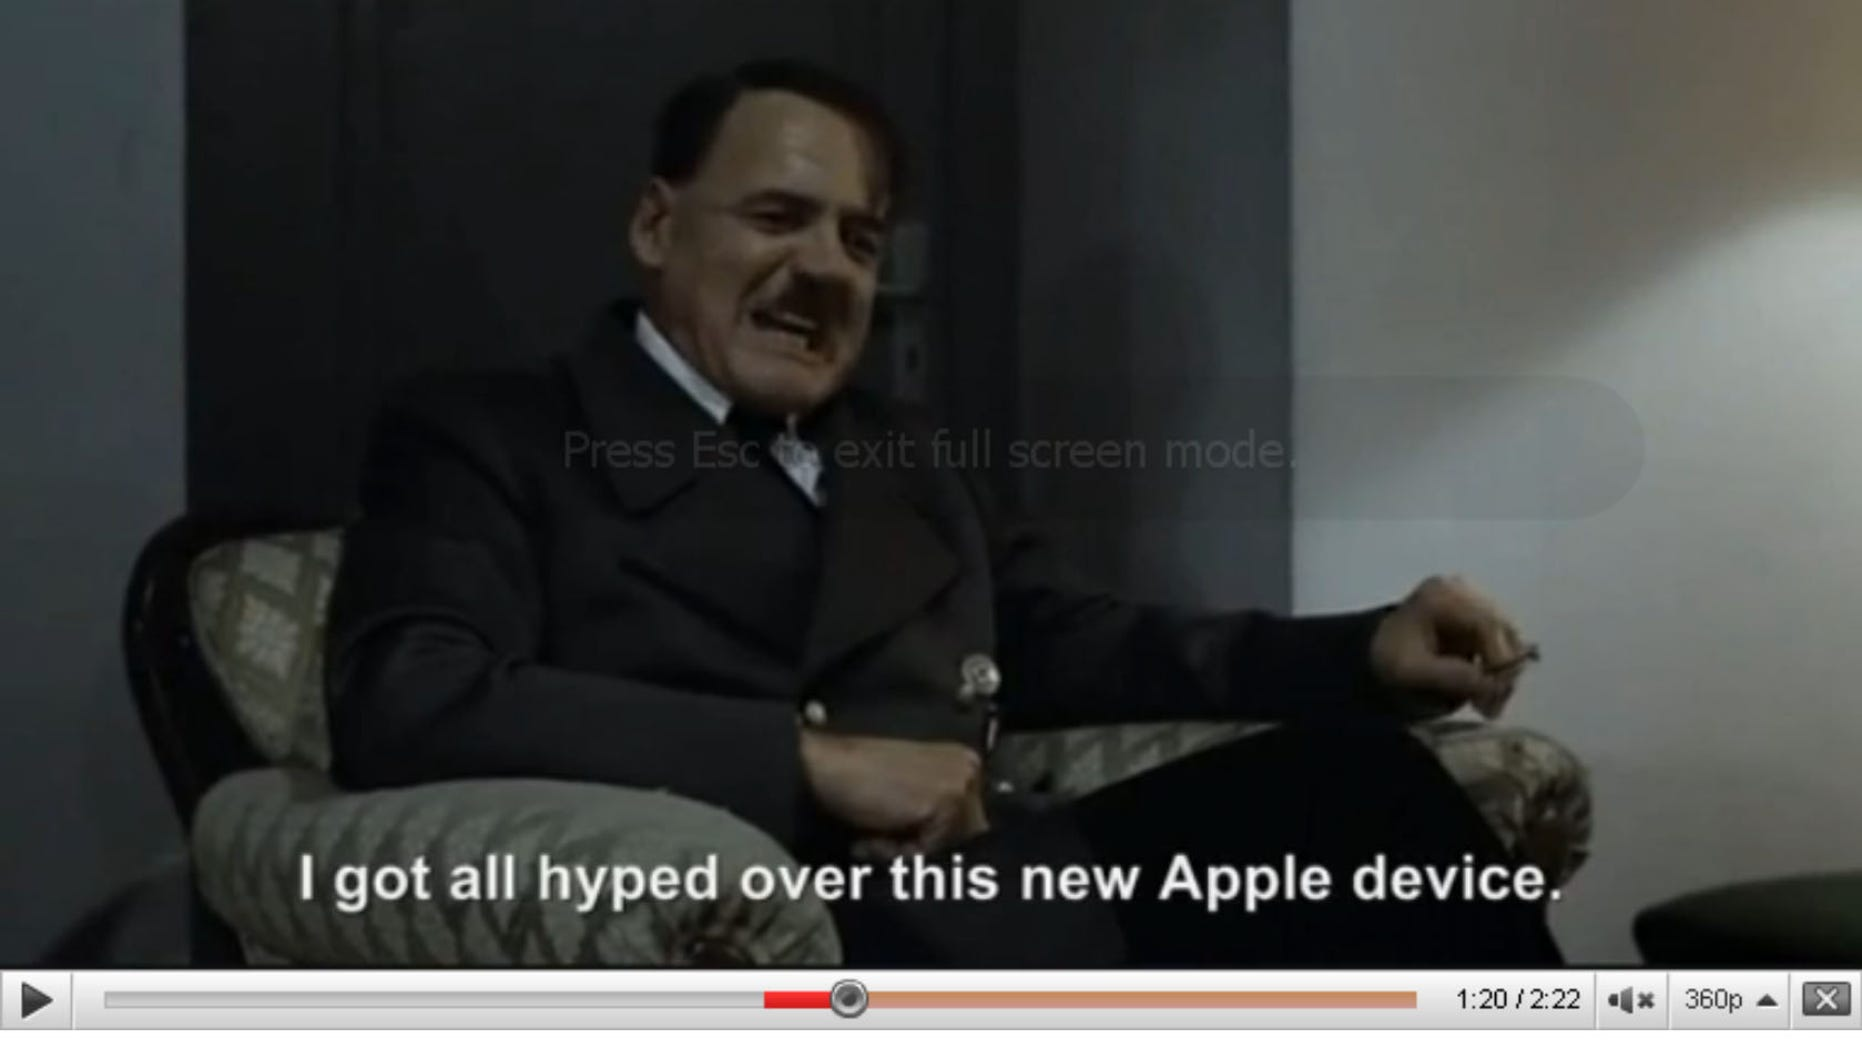 As the character playing Hitler lashes out in German, the subtitles in English from the original movie are replaced to indicate a completely different reason for the Fuhrer's rage.